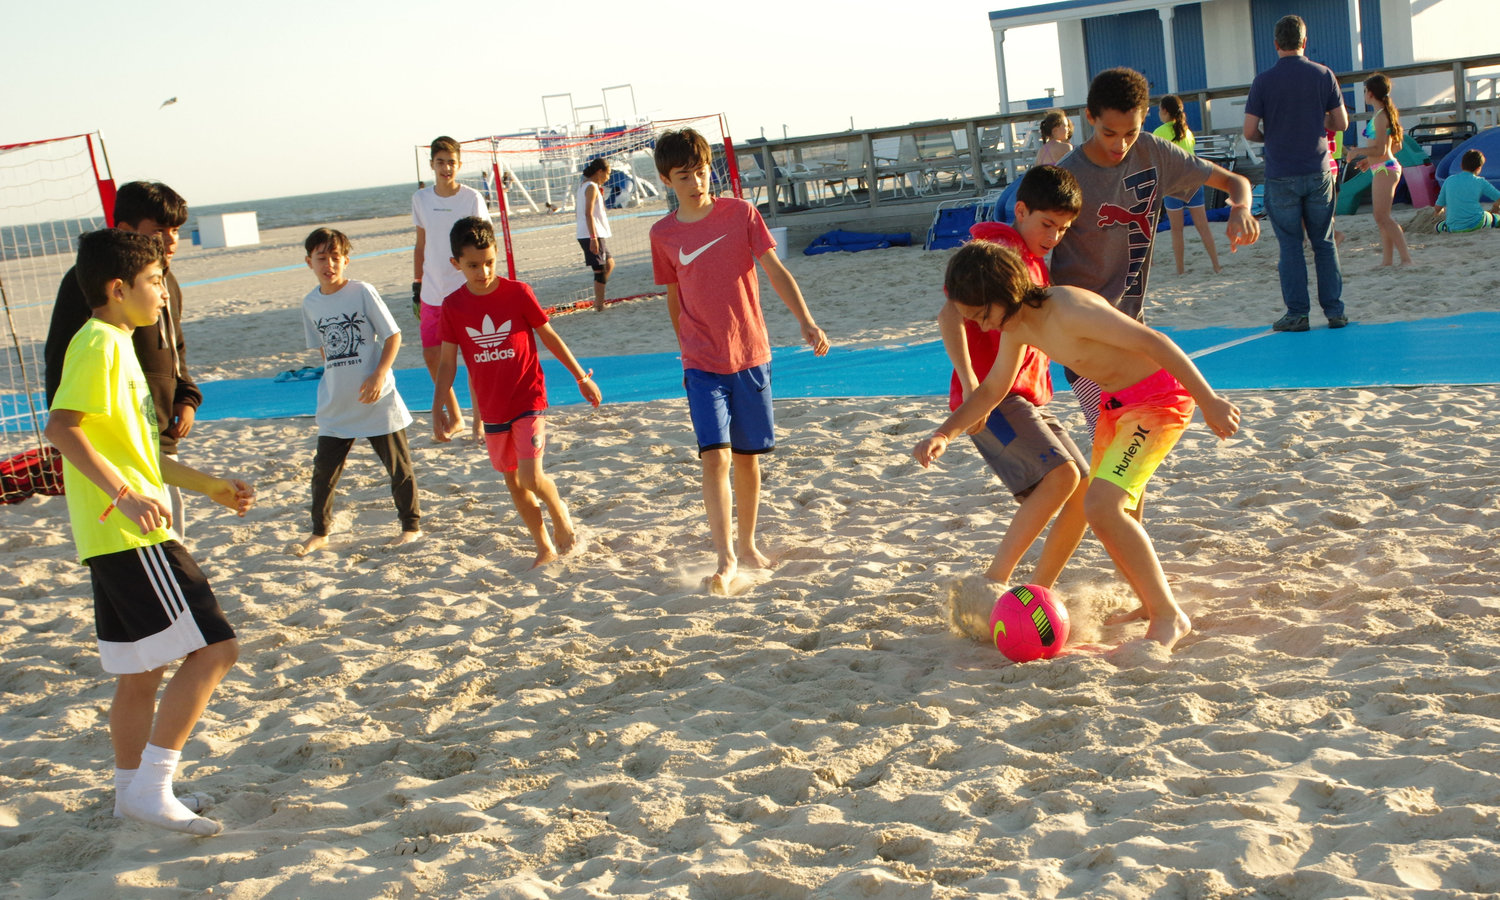 Hewlett Lawrence Soccer Club members combined the sand, soccer and sun at the annual party at the Sands Atlantic Beach on June 14.